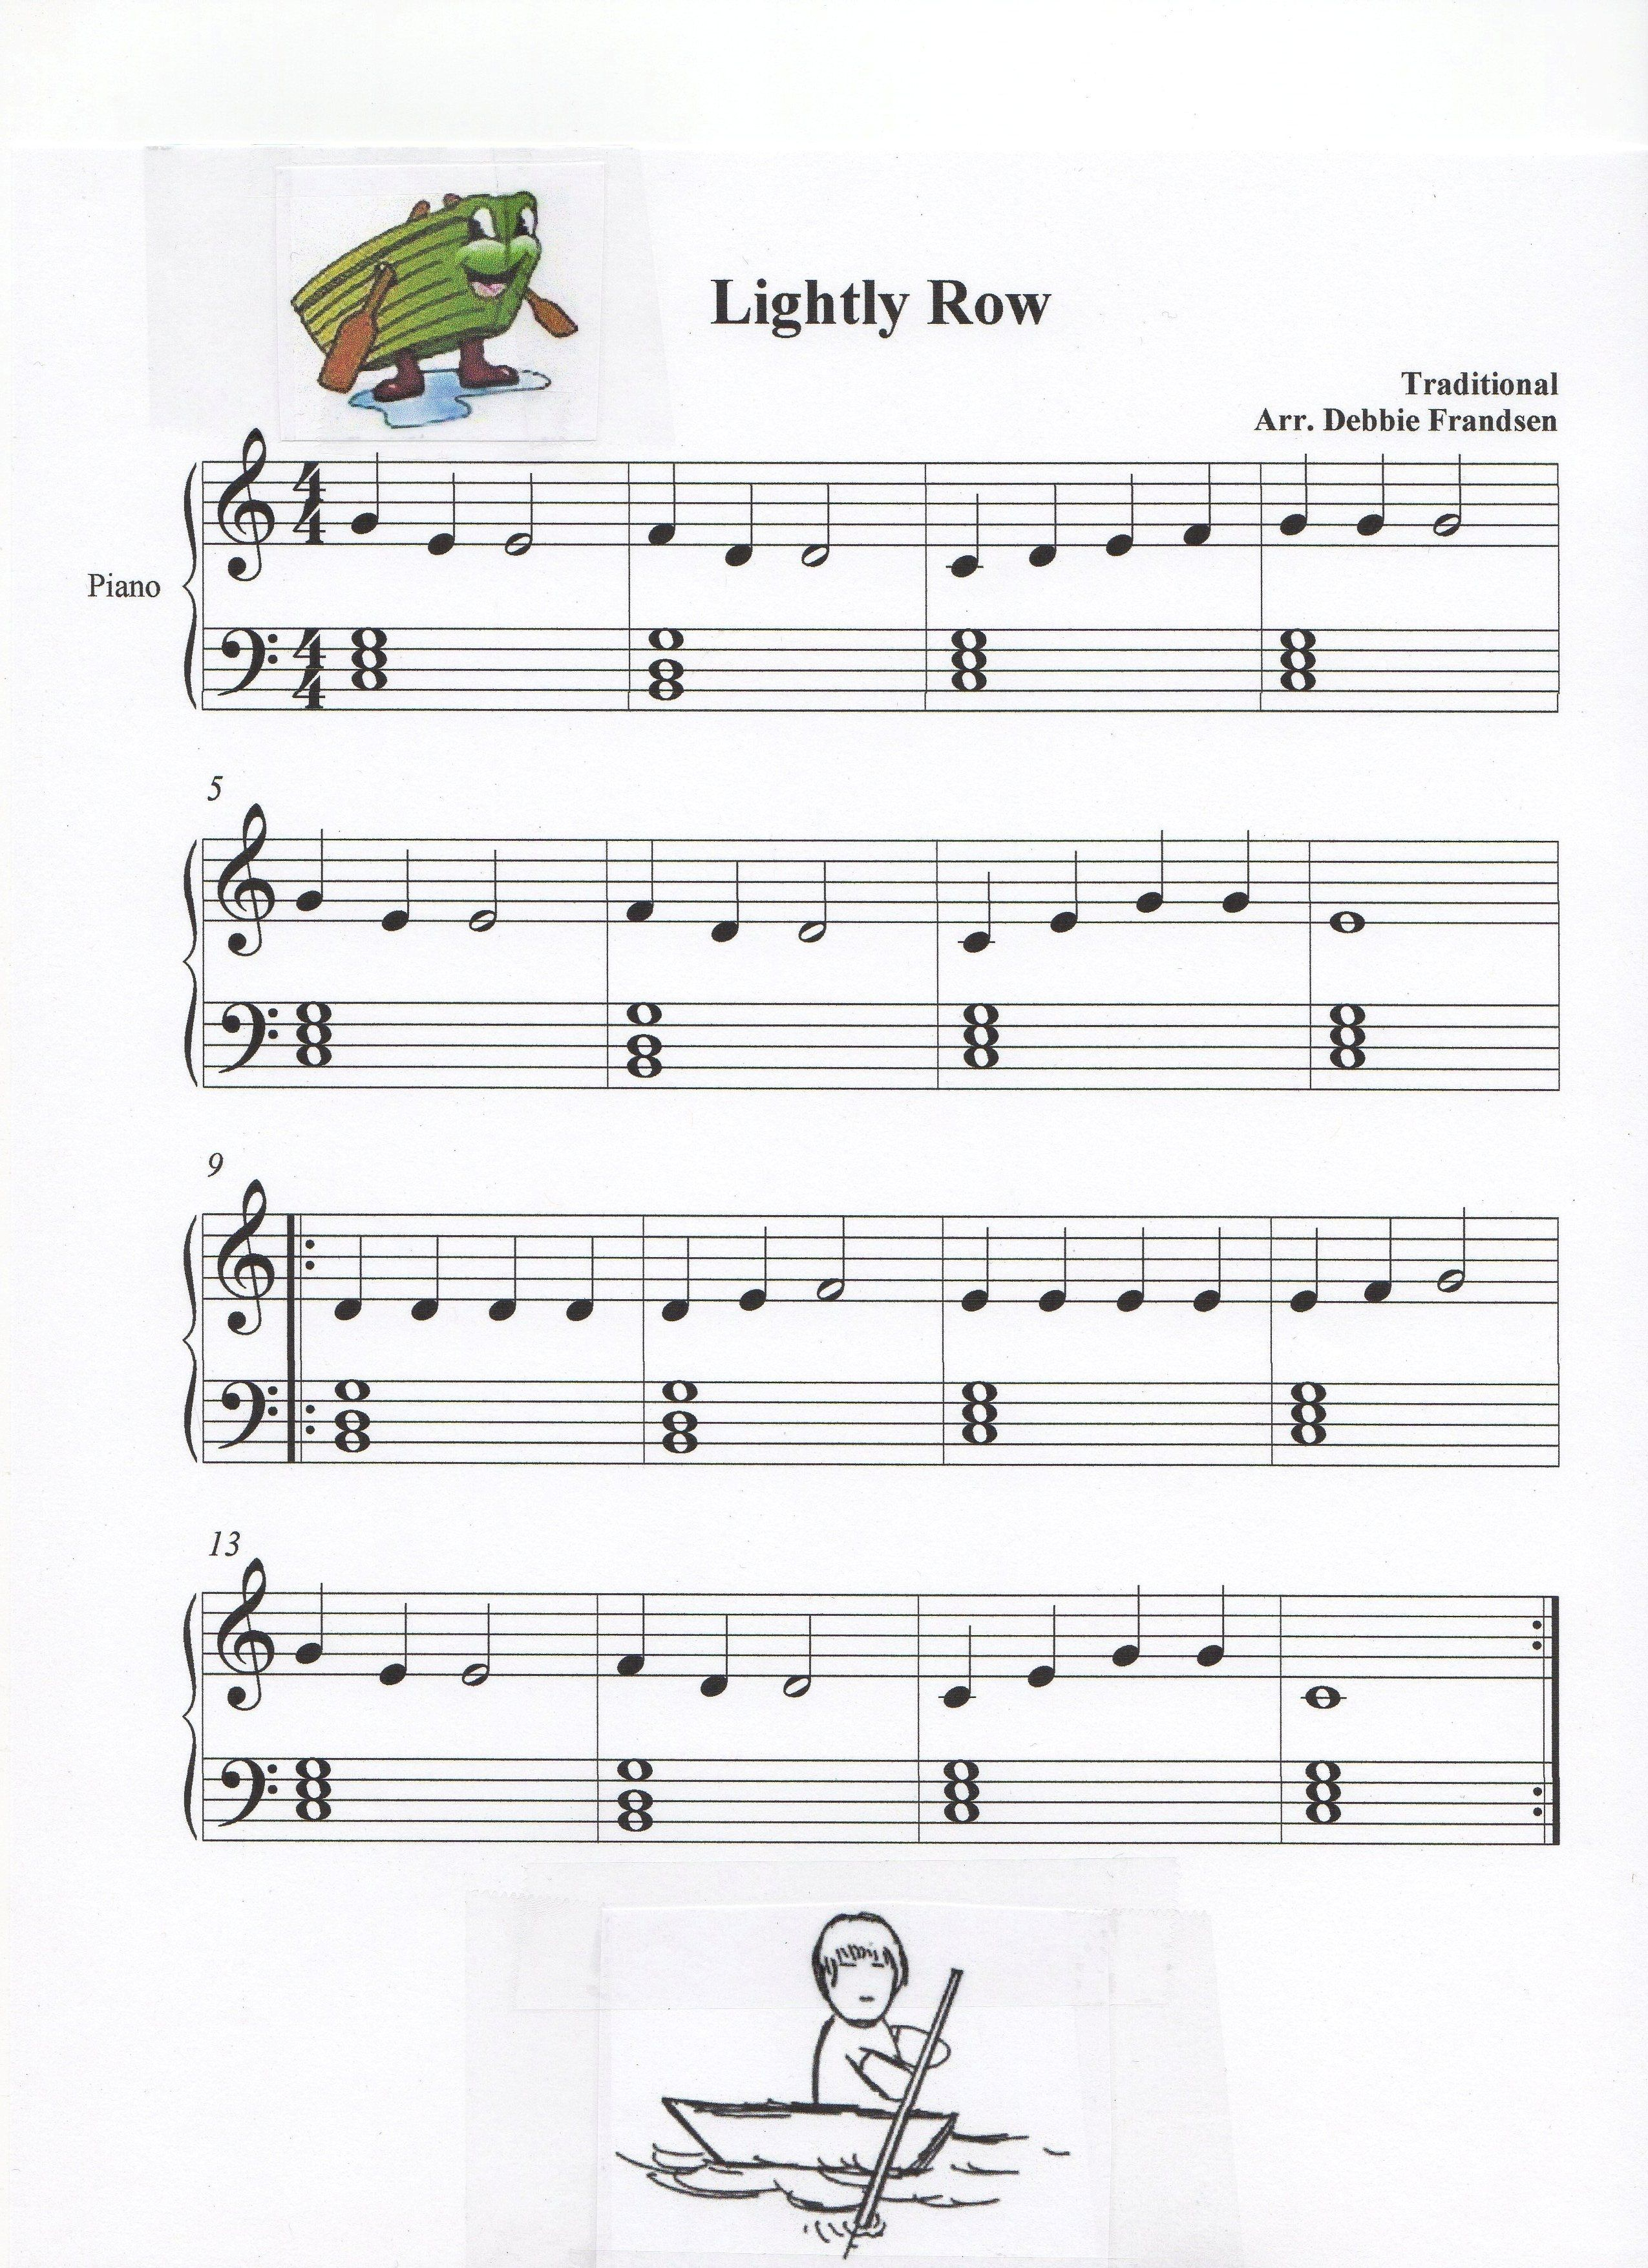 Lightly Row with basic block chords for Let's Play Music